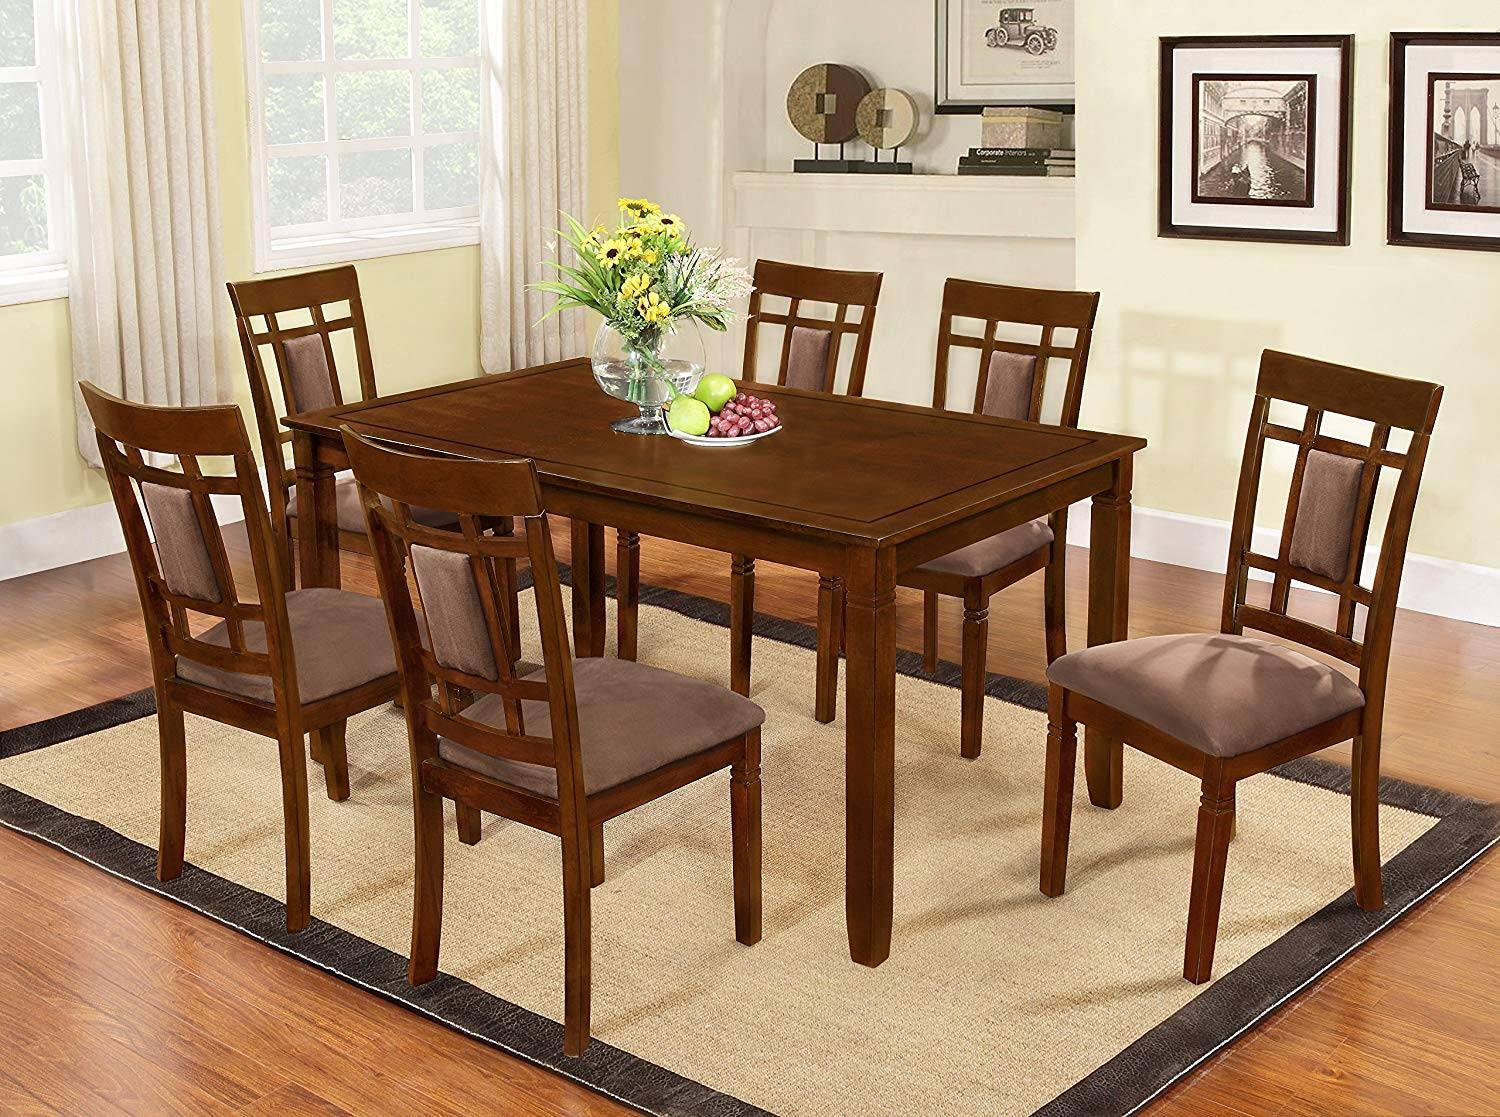 Dining Table Which Type Of Dining Table Is At Your Home Your